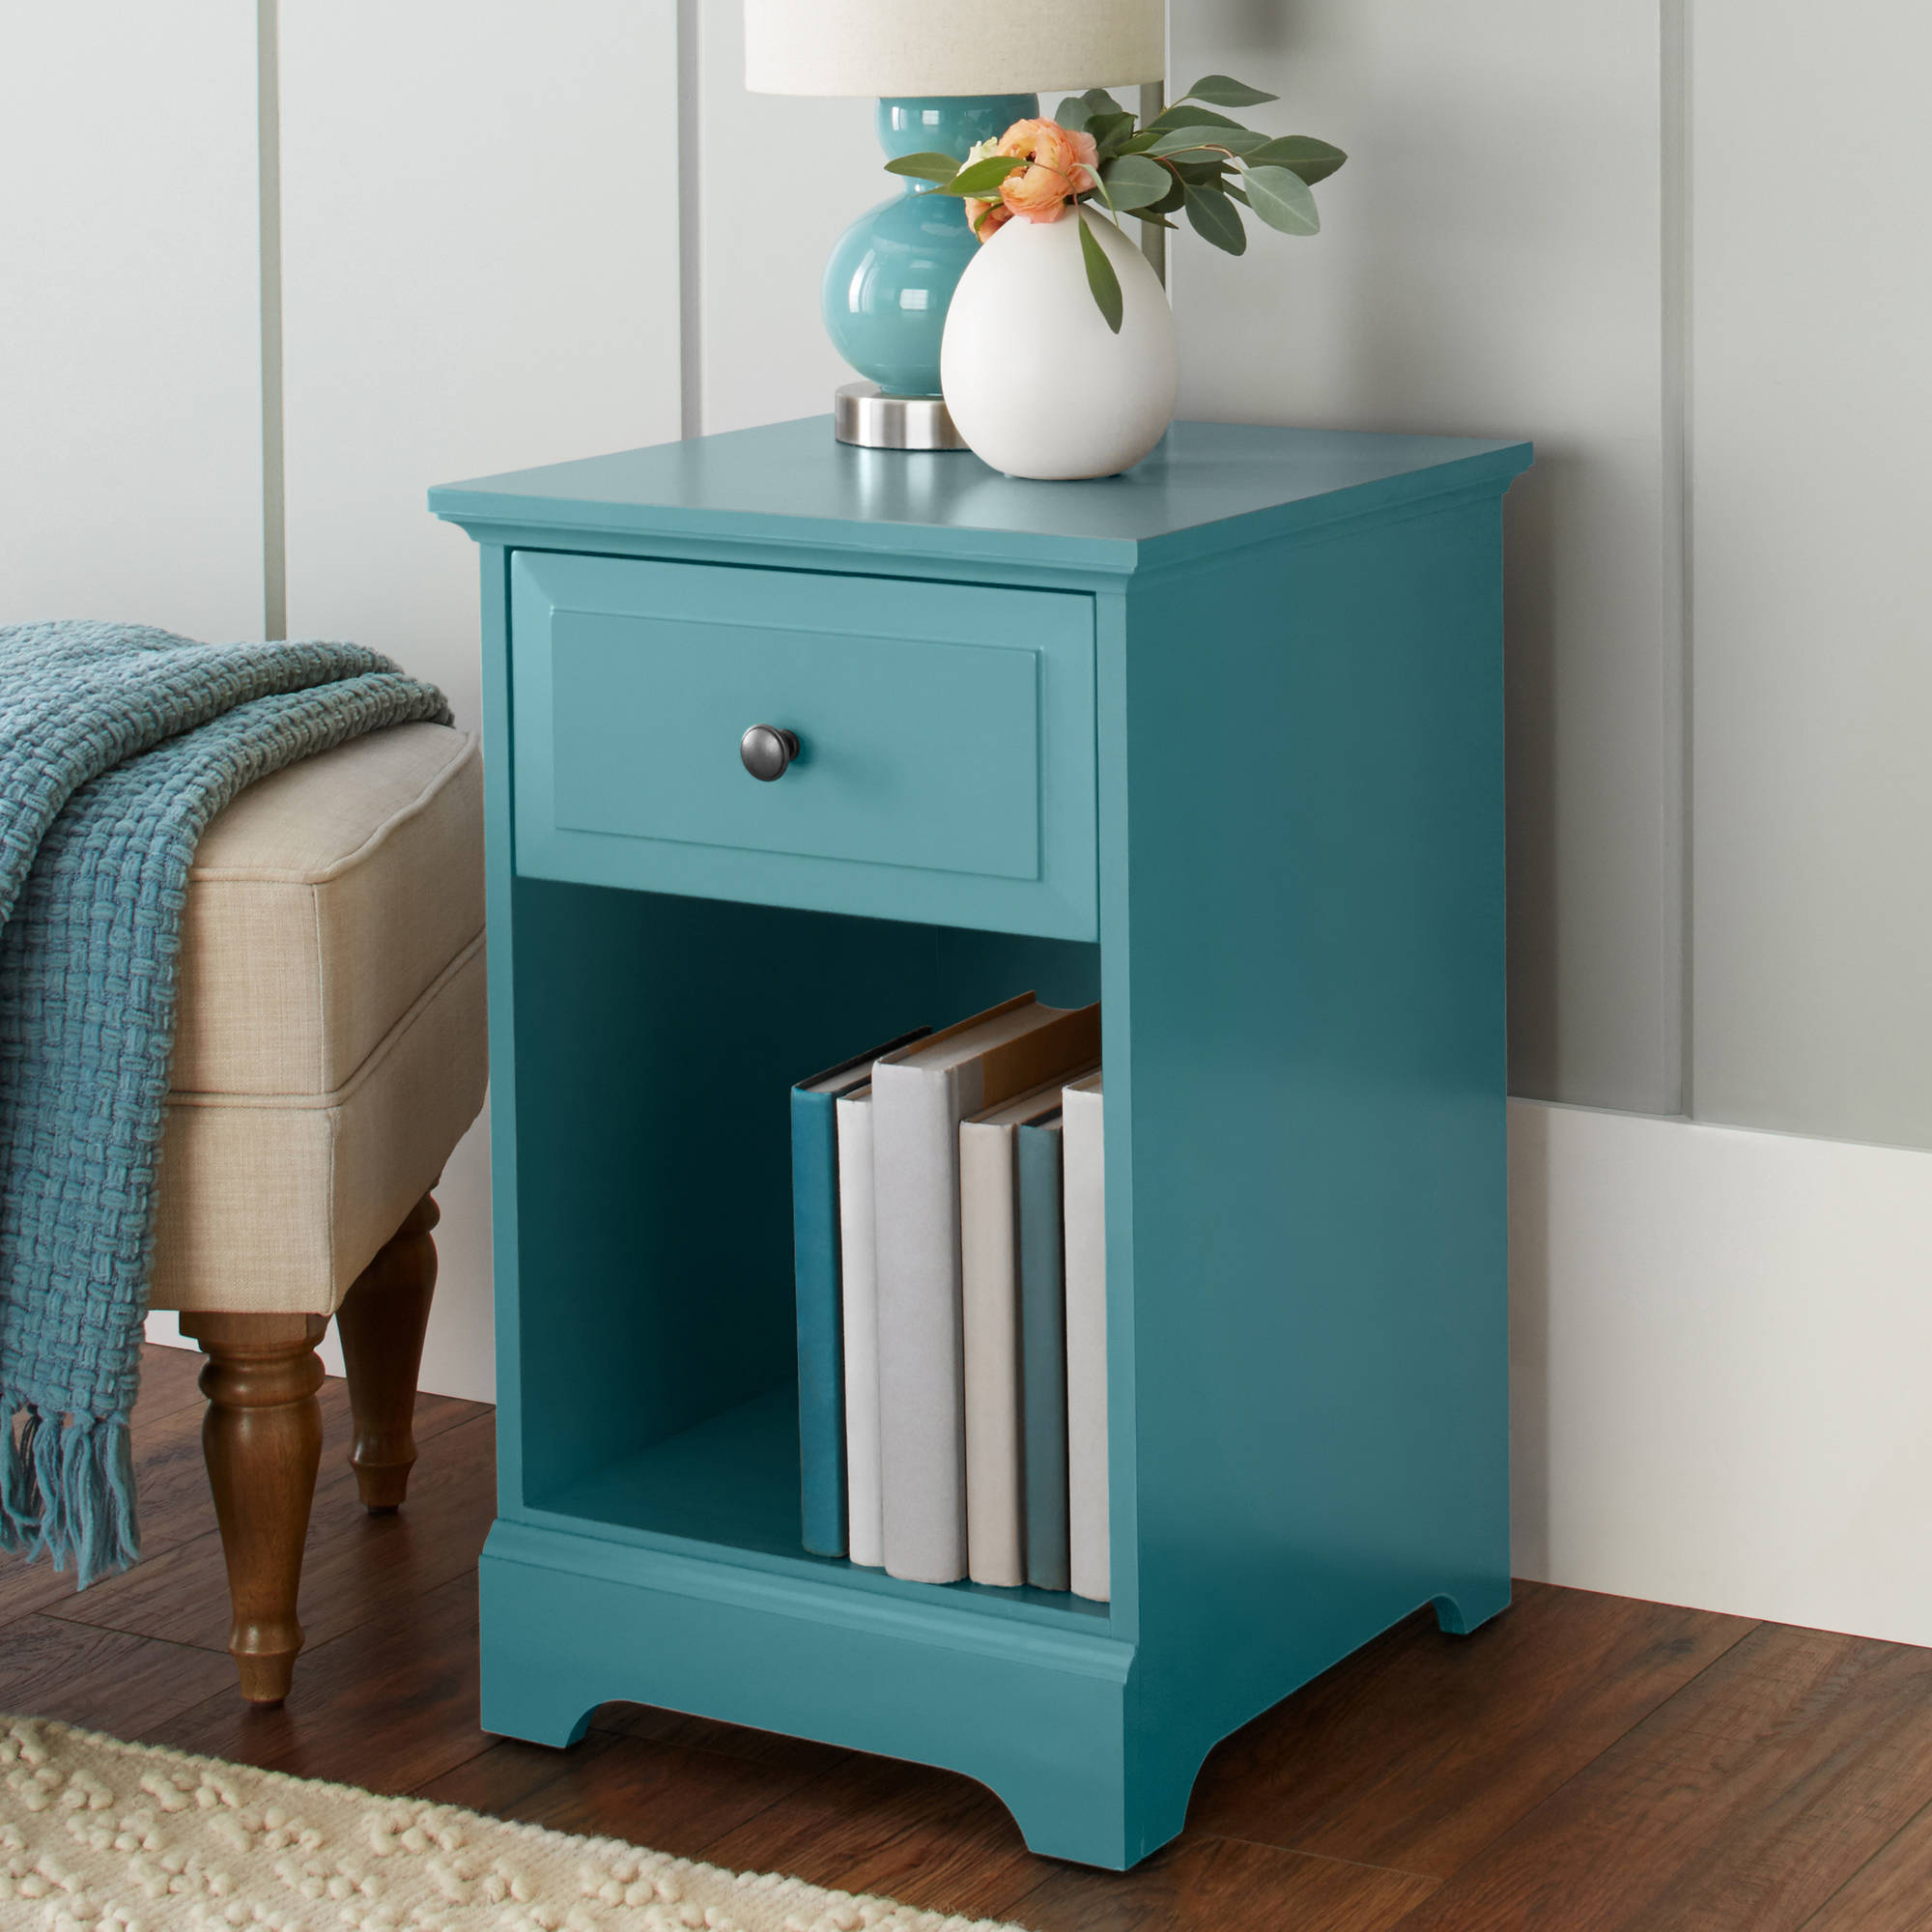 spring street savannah side table multiple colors aqua blue accent floor threshold transitions contemporary chandeliers small round tablecloth razer ouroboros elite ambidextrous